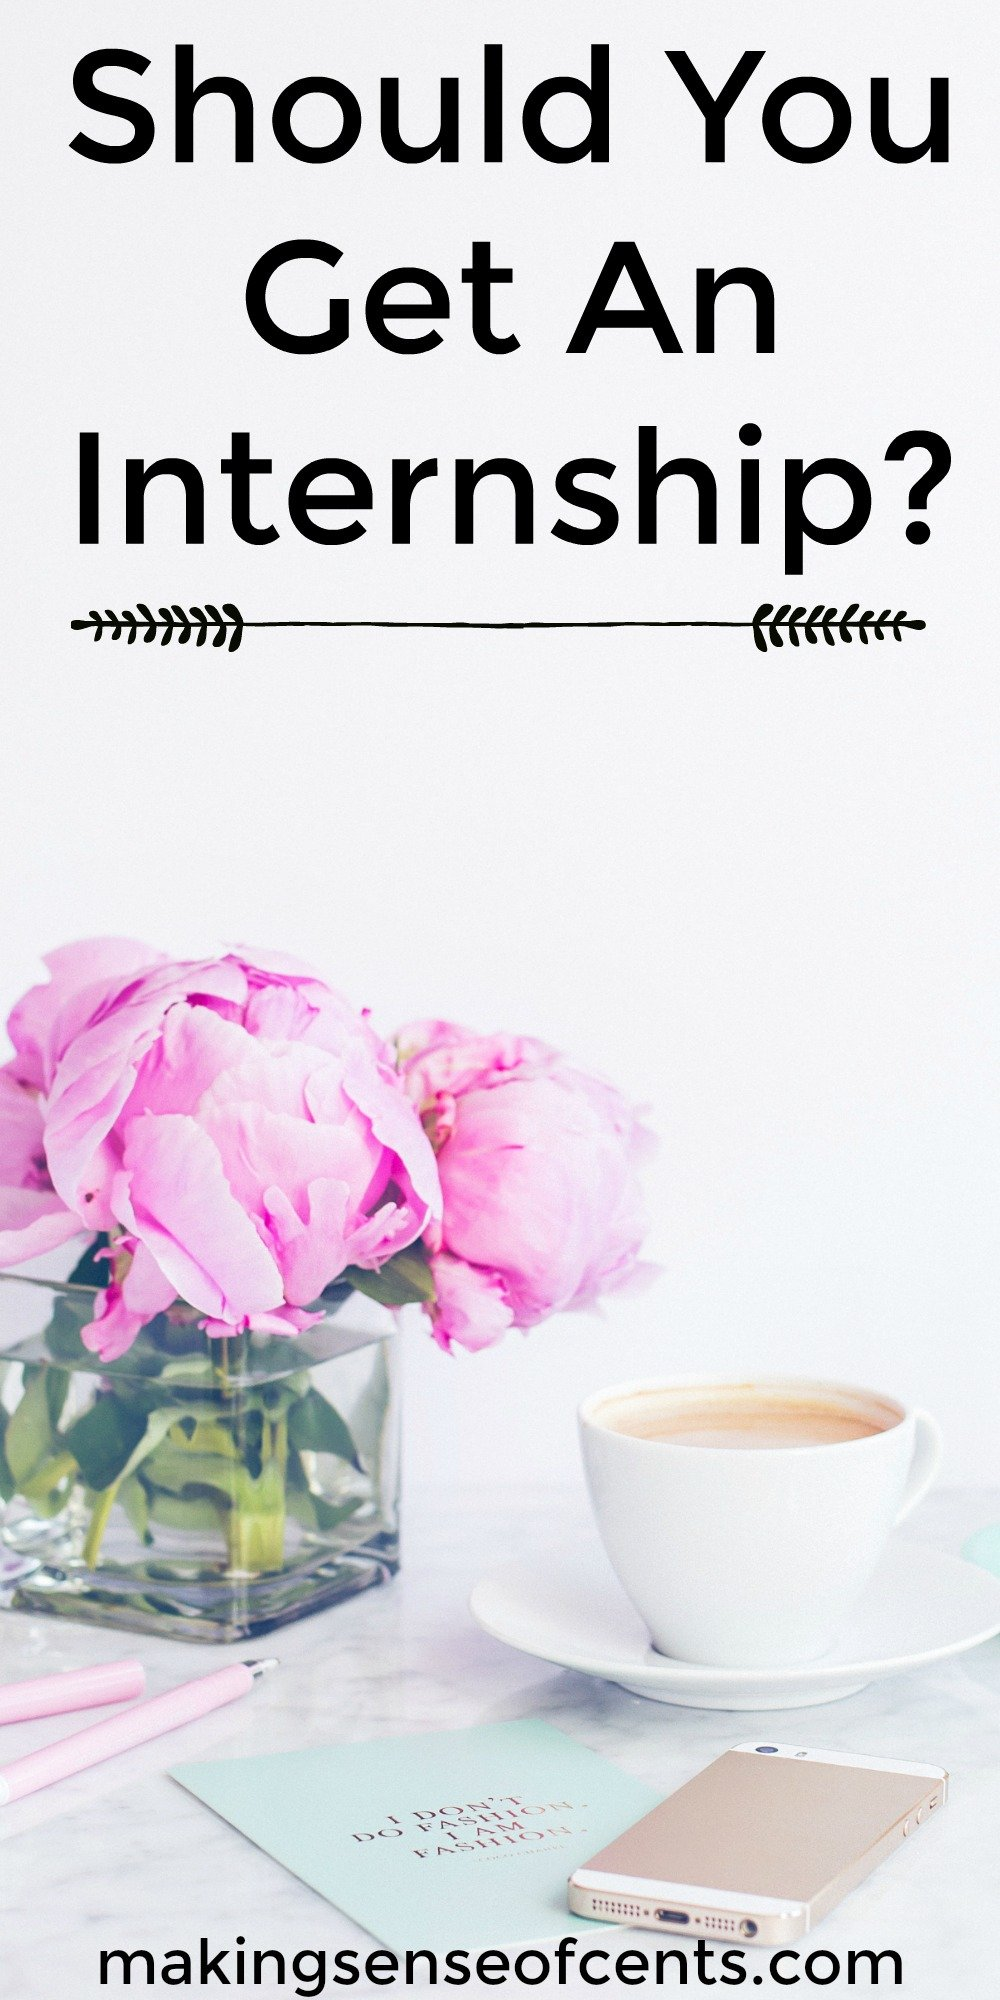 Should You Get An Internship?